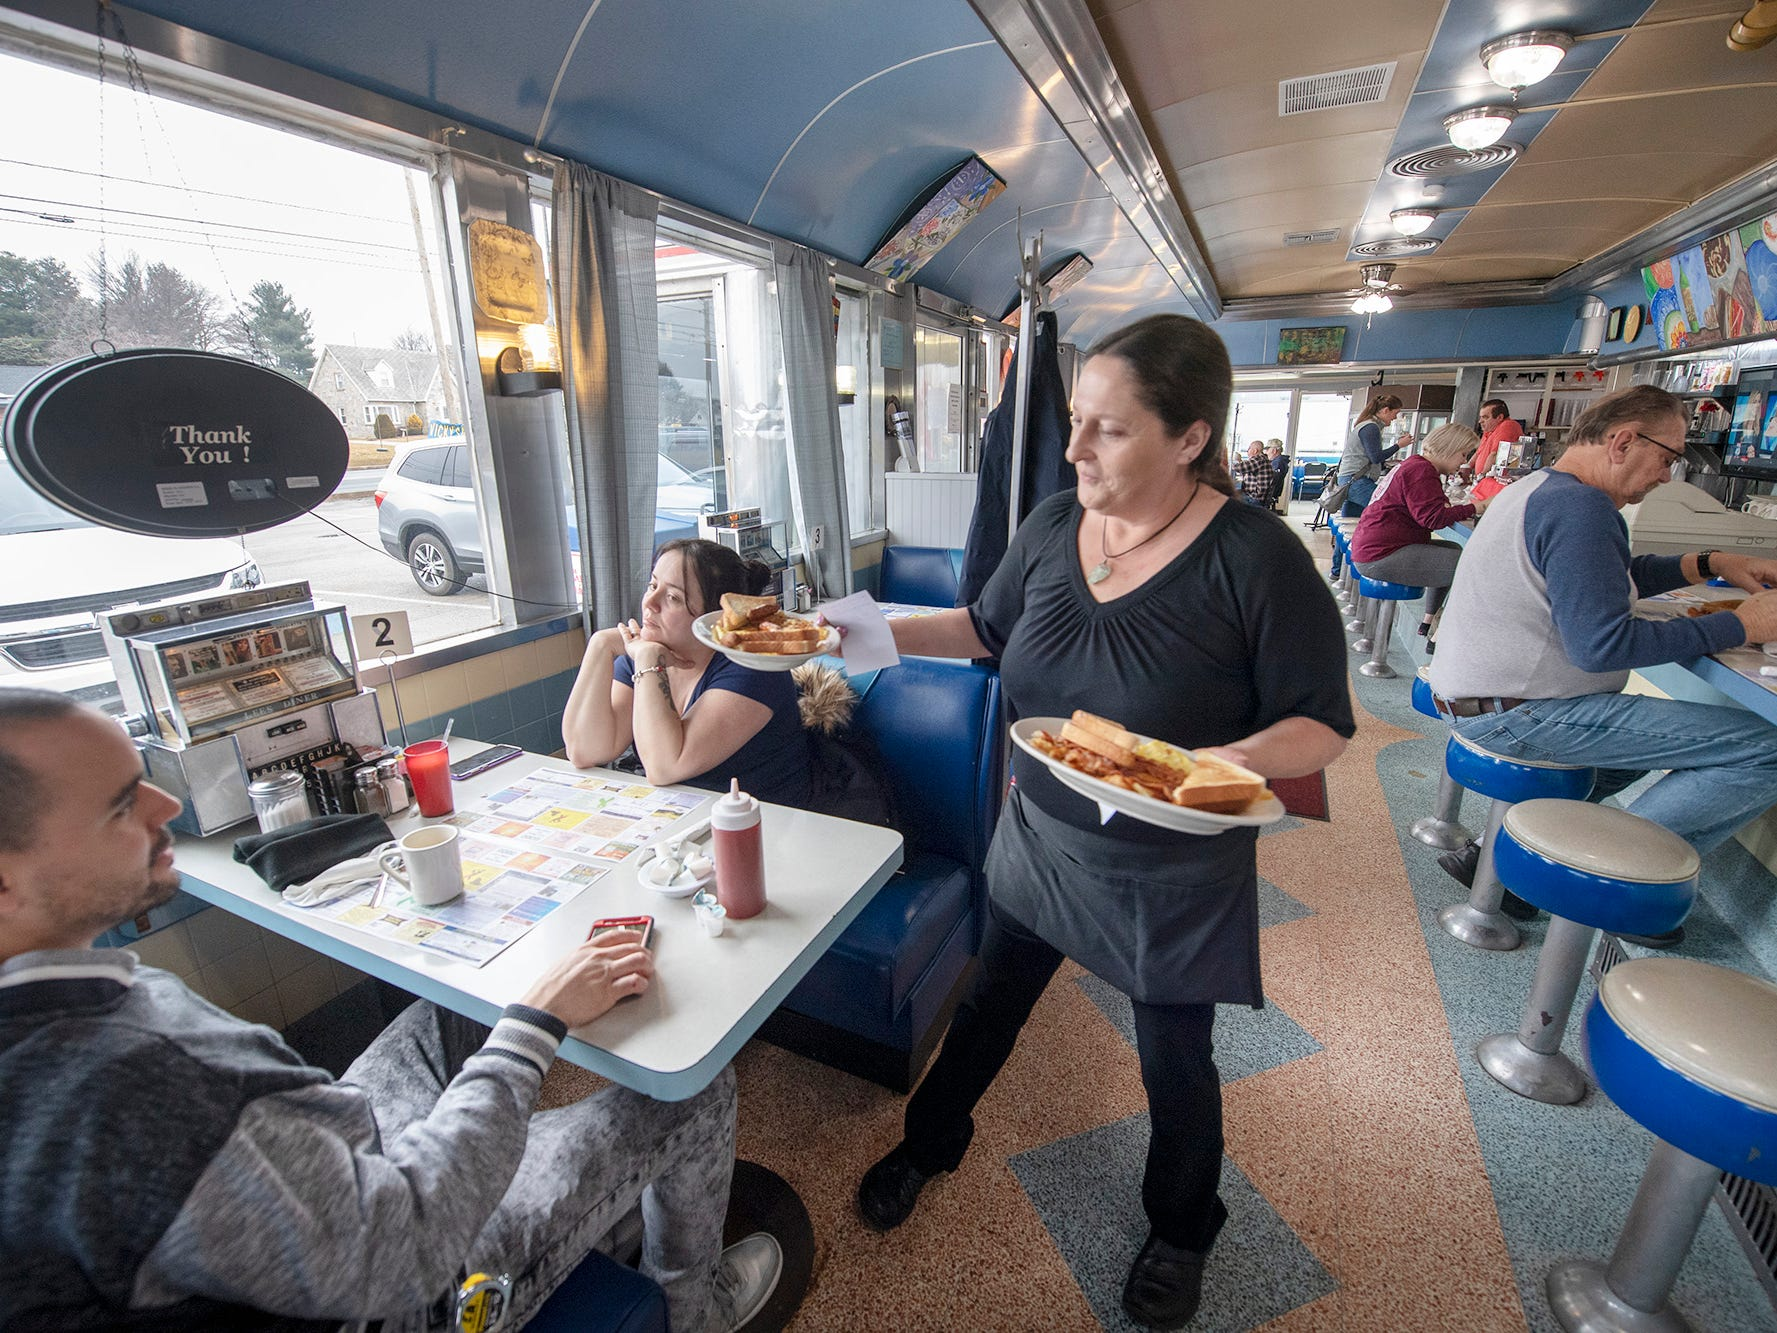 Manager Sherry Figard, right, brings out breakfast to customers at Vicky's Diner. The former Lee's Diner, in West Manchester Township, is under new ownership.